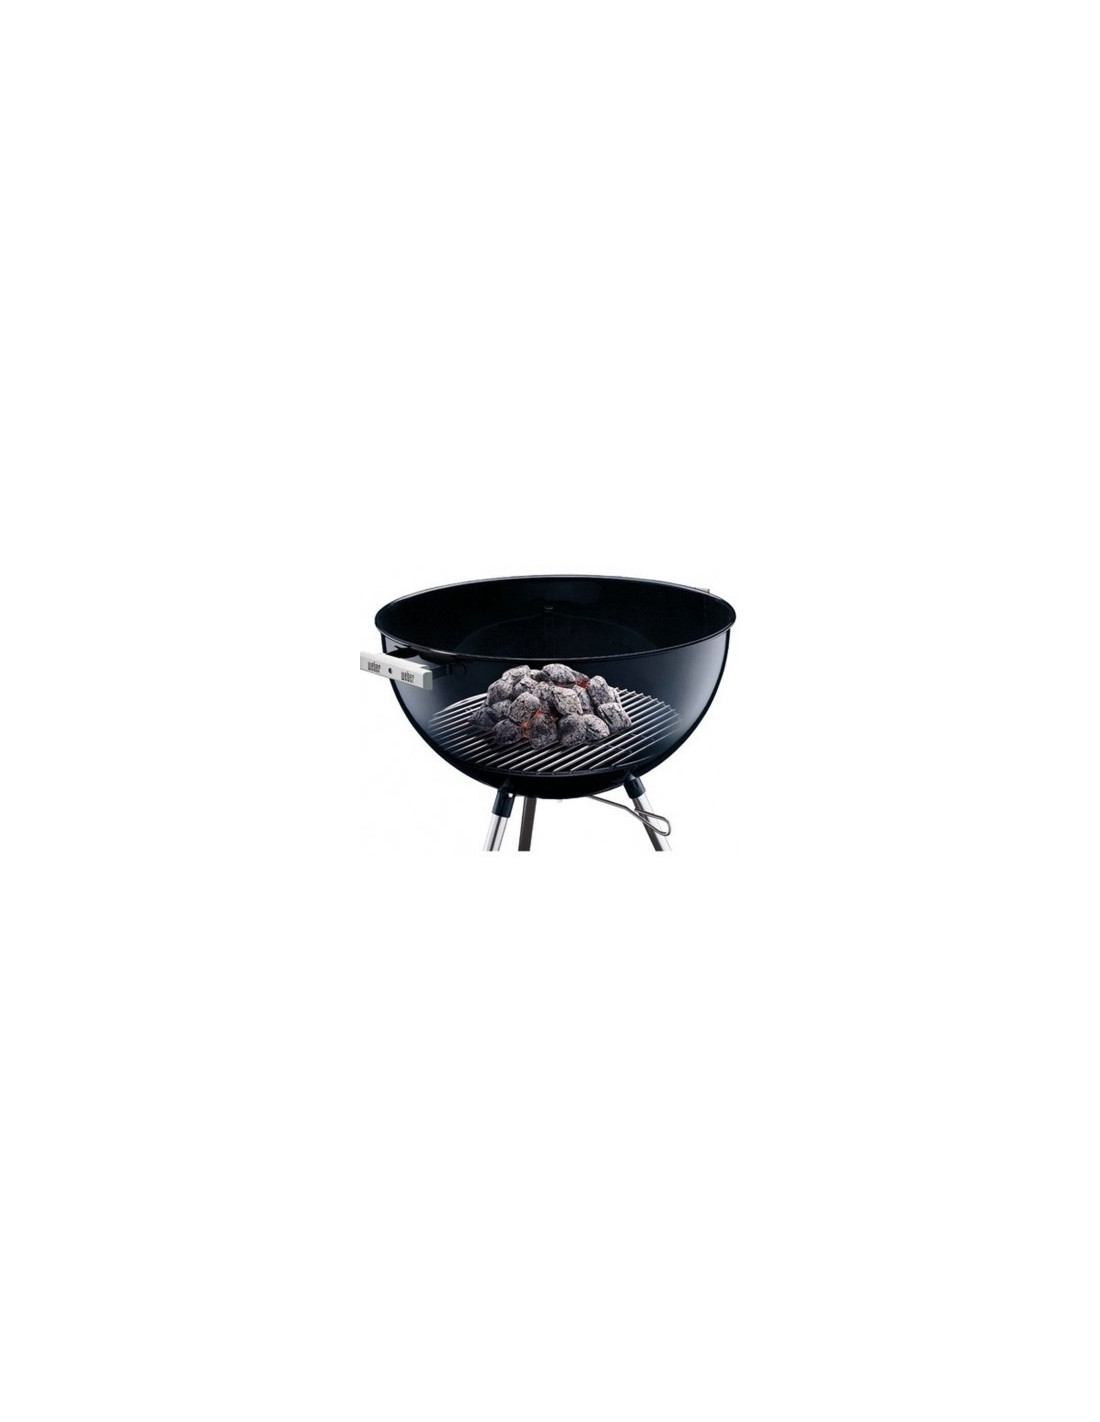 grille foy re pour barbecue weber 57 cm. Black Bedroom Furniture Sets. Home Design Ideas